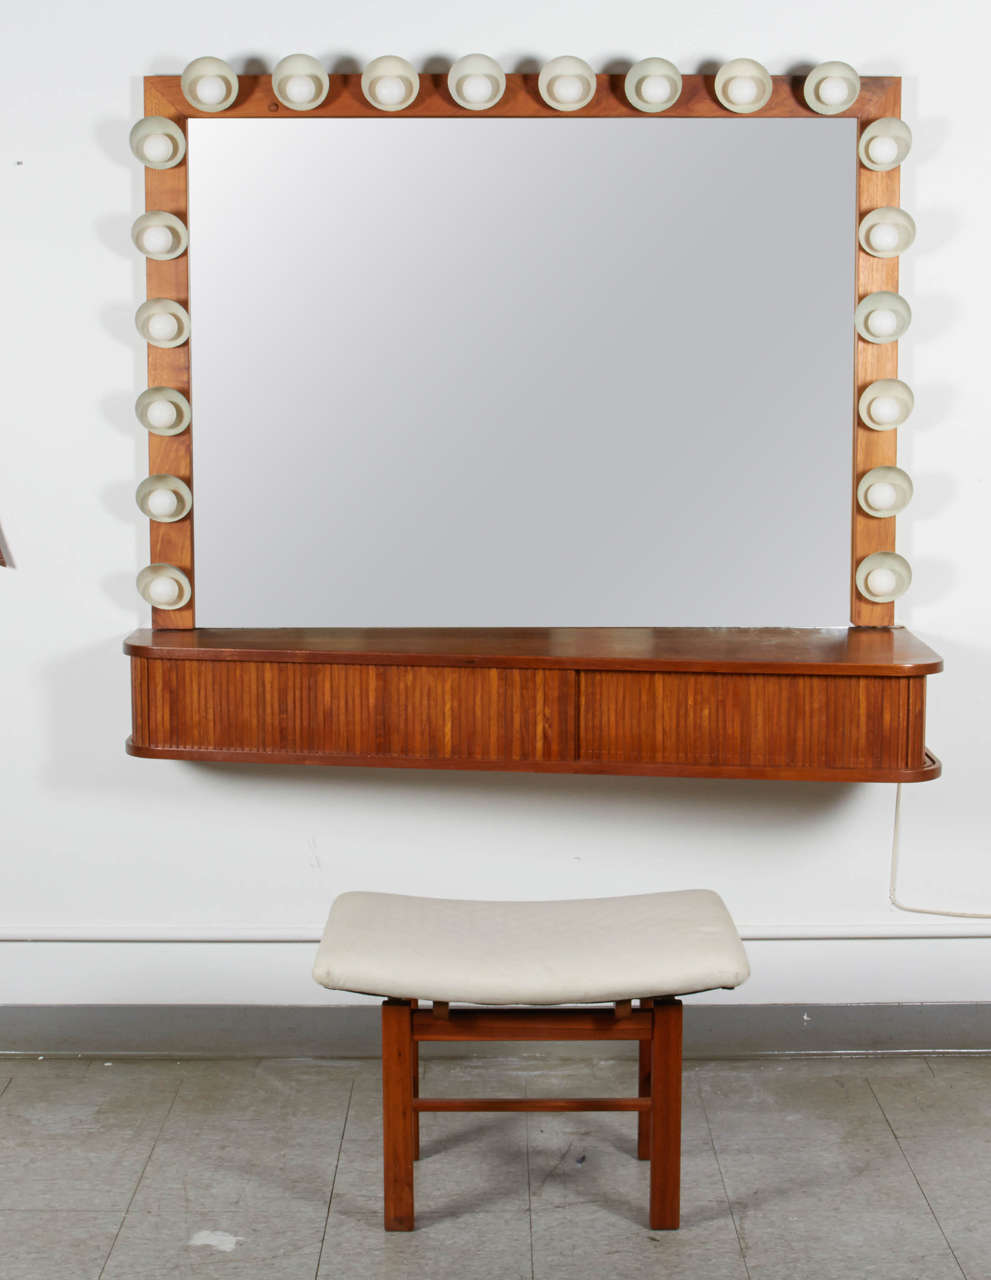 The custom-made vanity is rendered in clean and elegant design. The array of light covered by hemisphere shade in perforated metal gives ample illumination. The vanity comes with the matching stool. The seat measures D 17